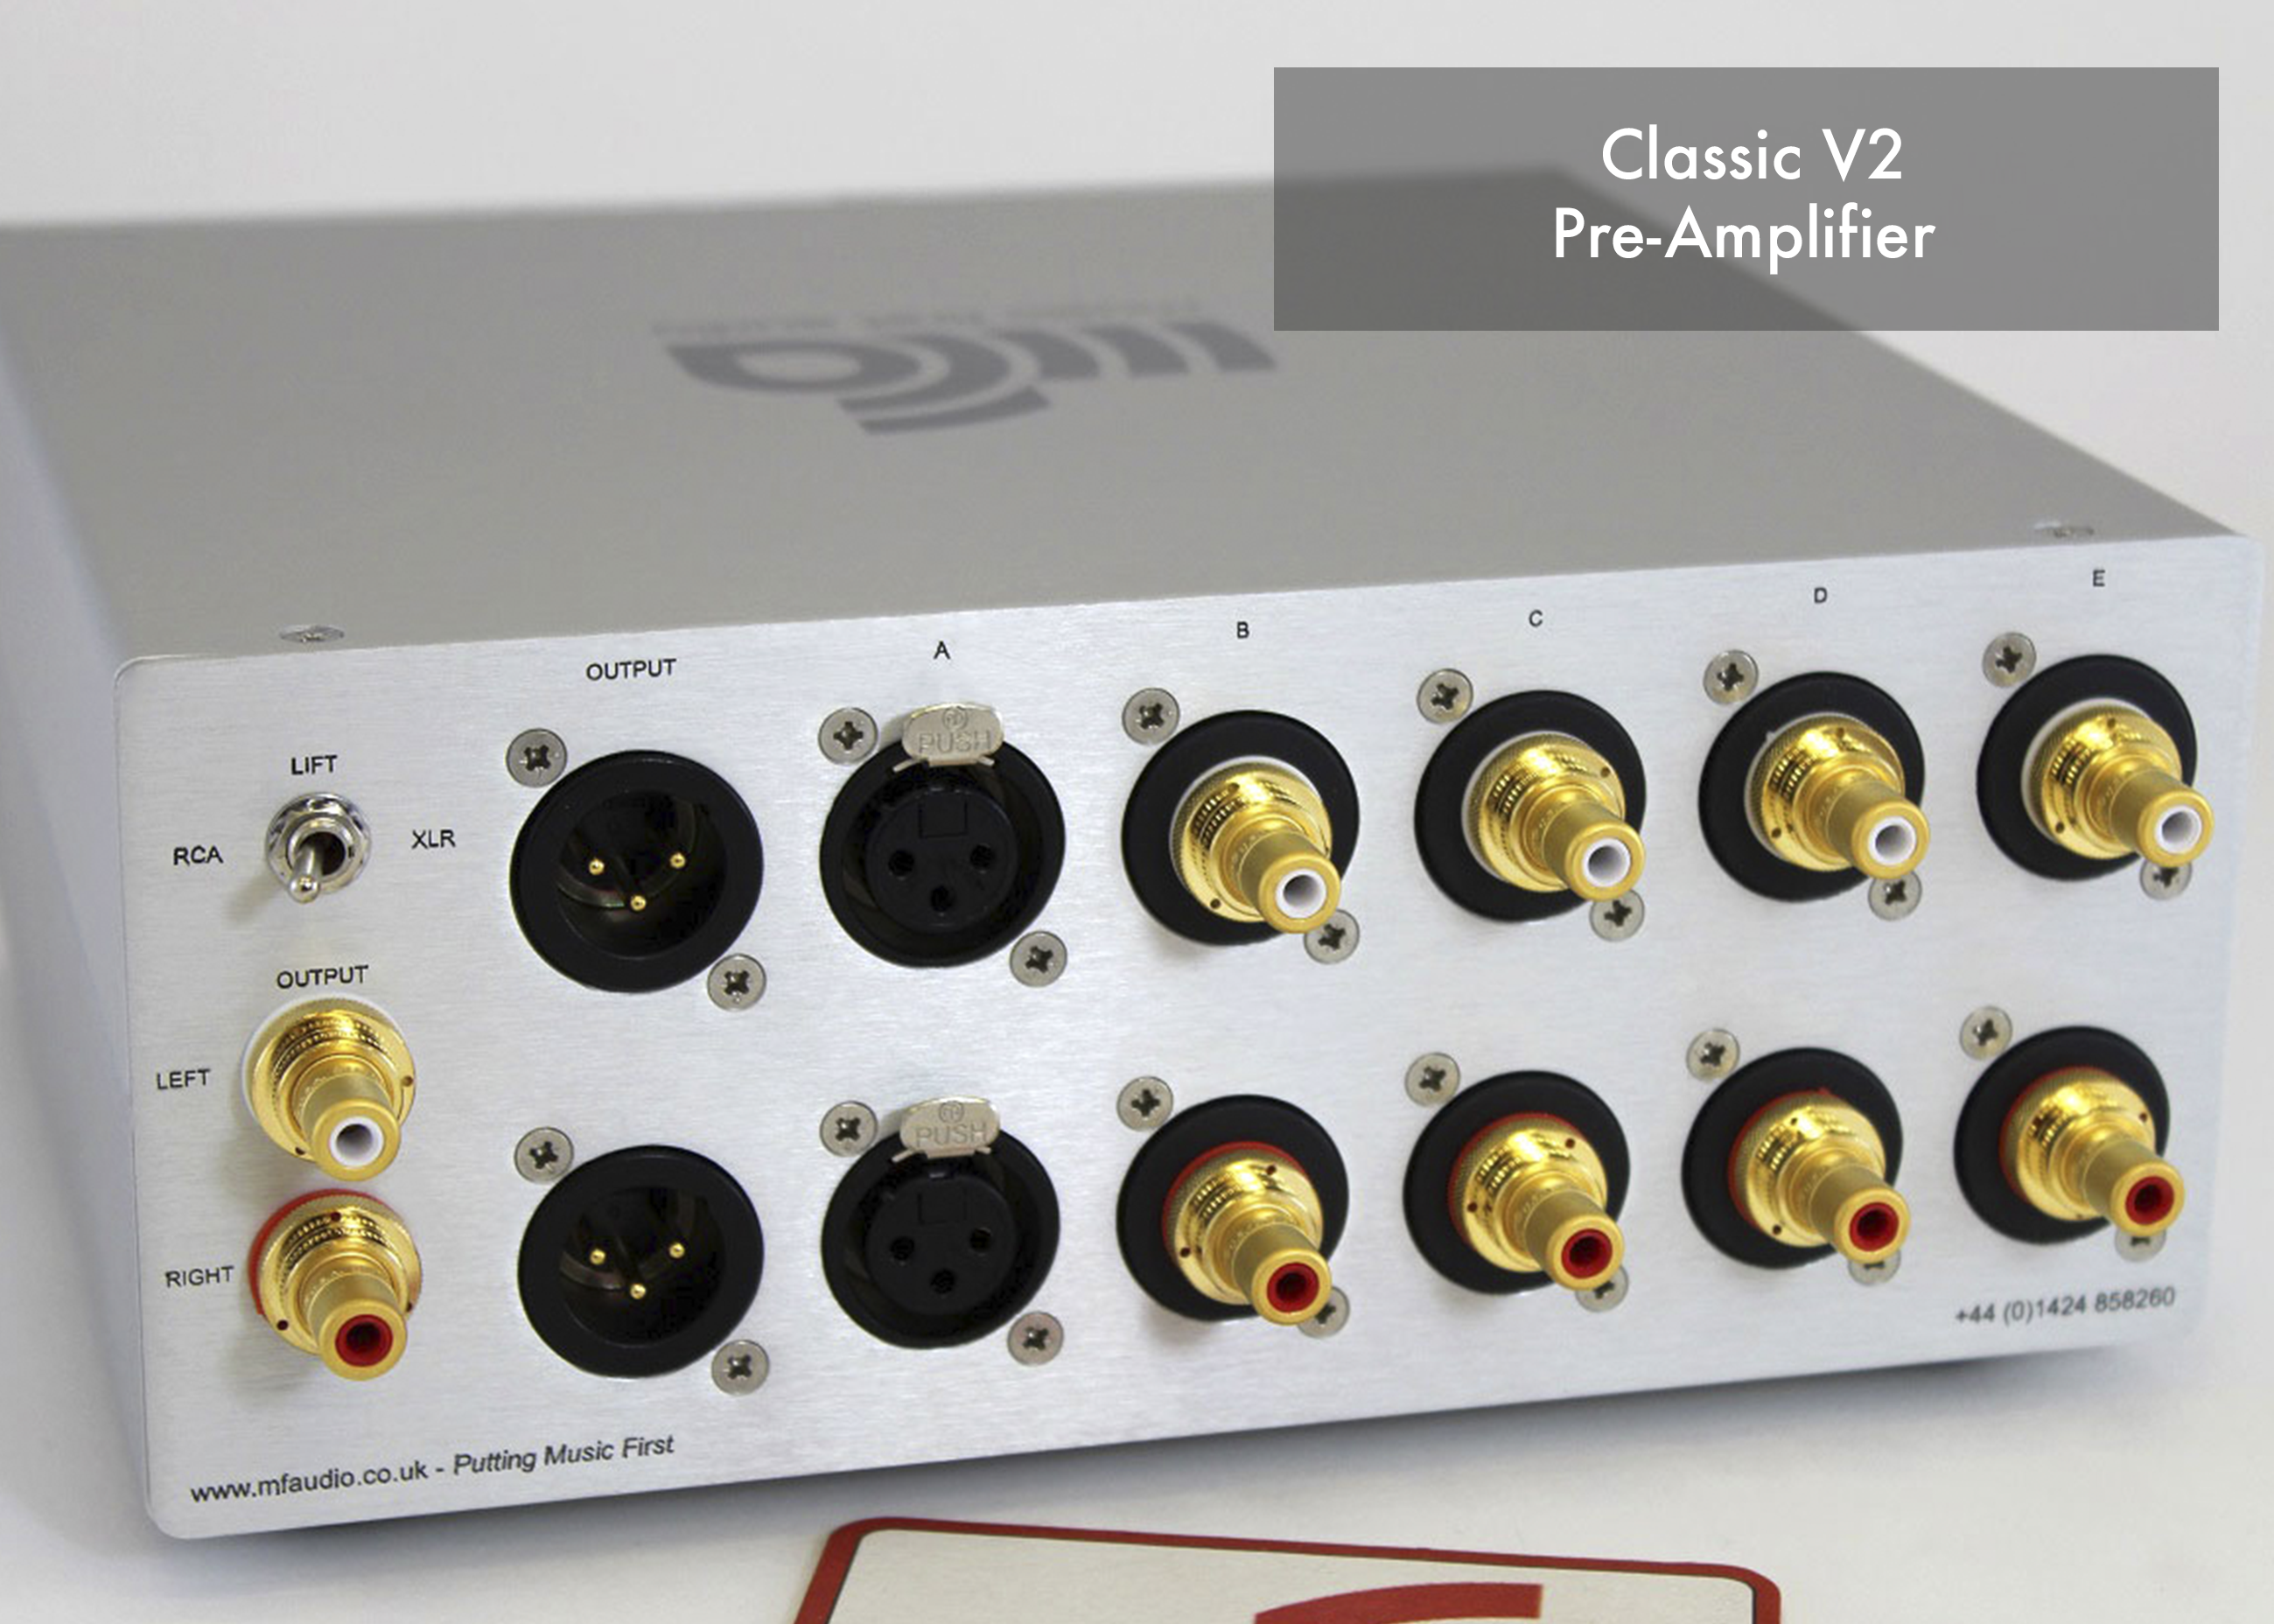 Music First Audio Preamplifier Input From Moving Coil Head The Classic Pre Amplifier Was Introduced In 2003 And Positioned Itself At Very Heart Of A True High End Hi Fi Systems